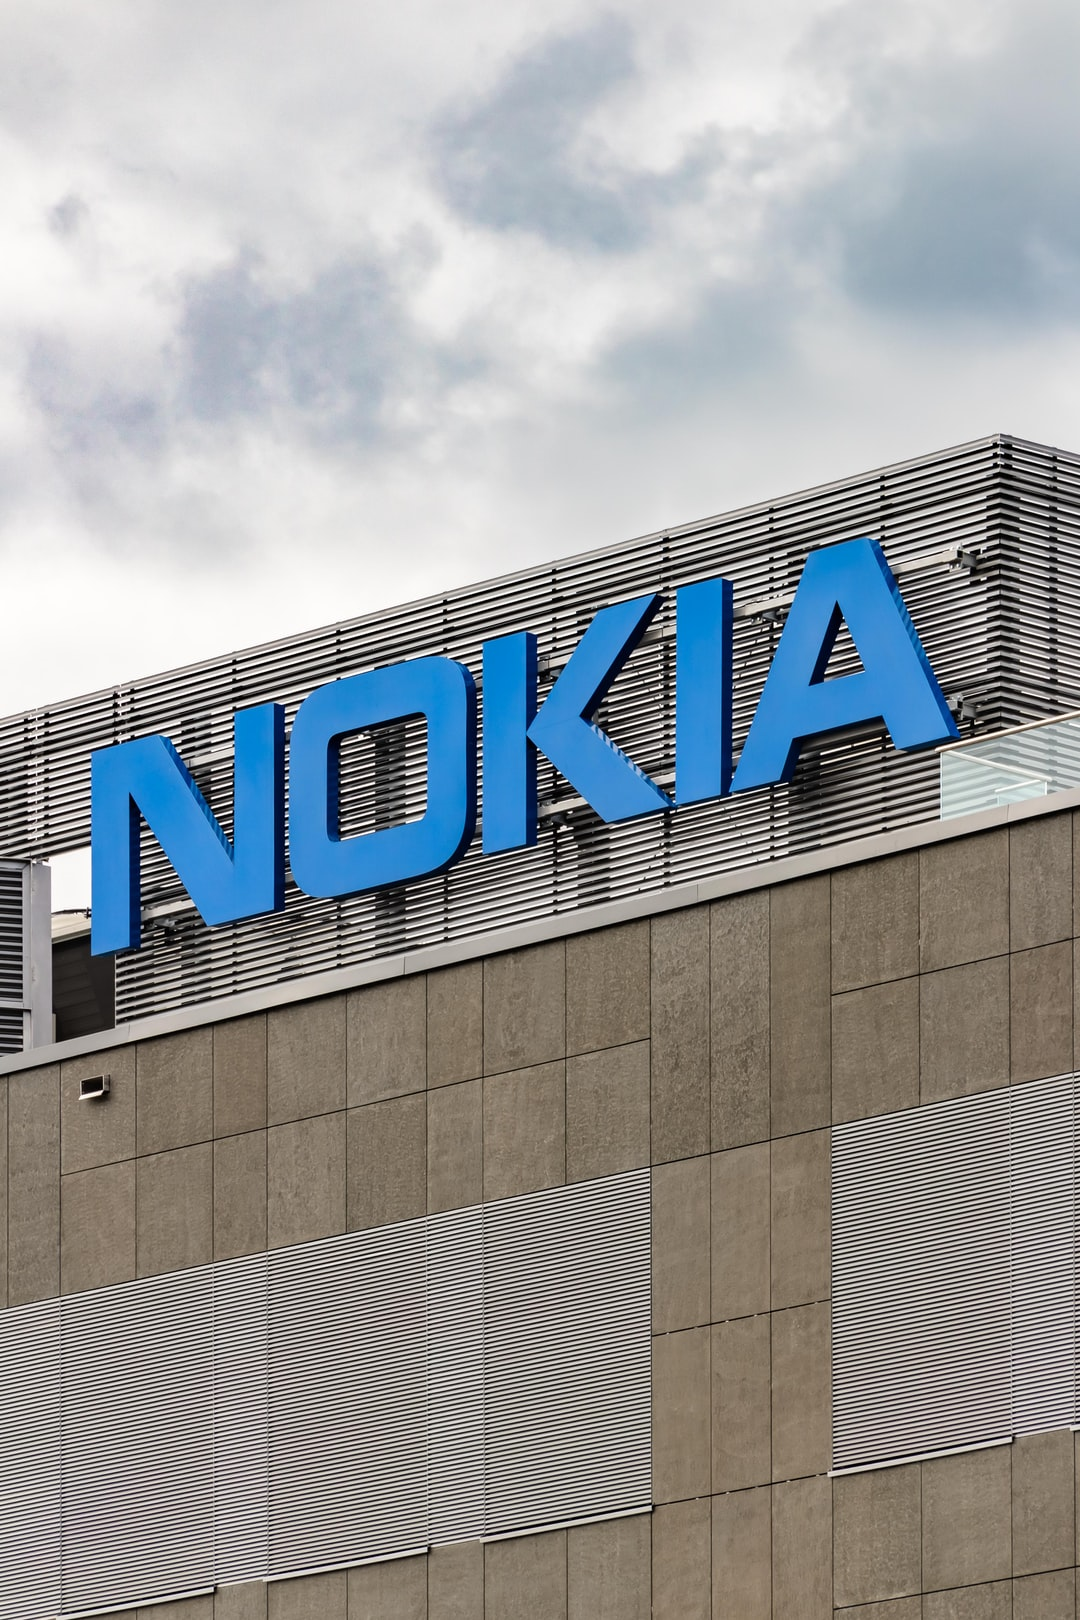 I spotted the Wrocław headquarters of Nokia. I think my second cellular phone was Nokia ;)